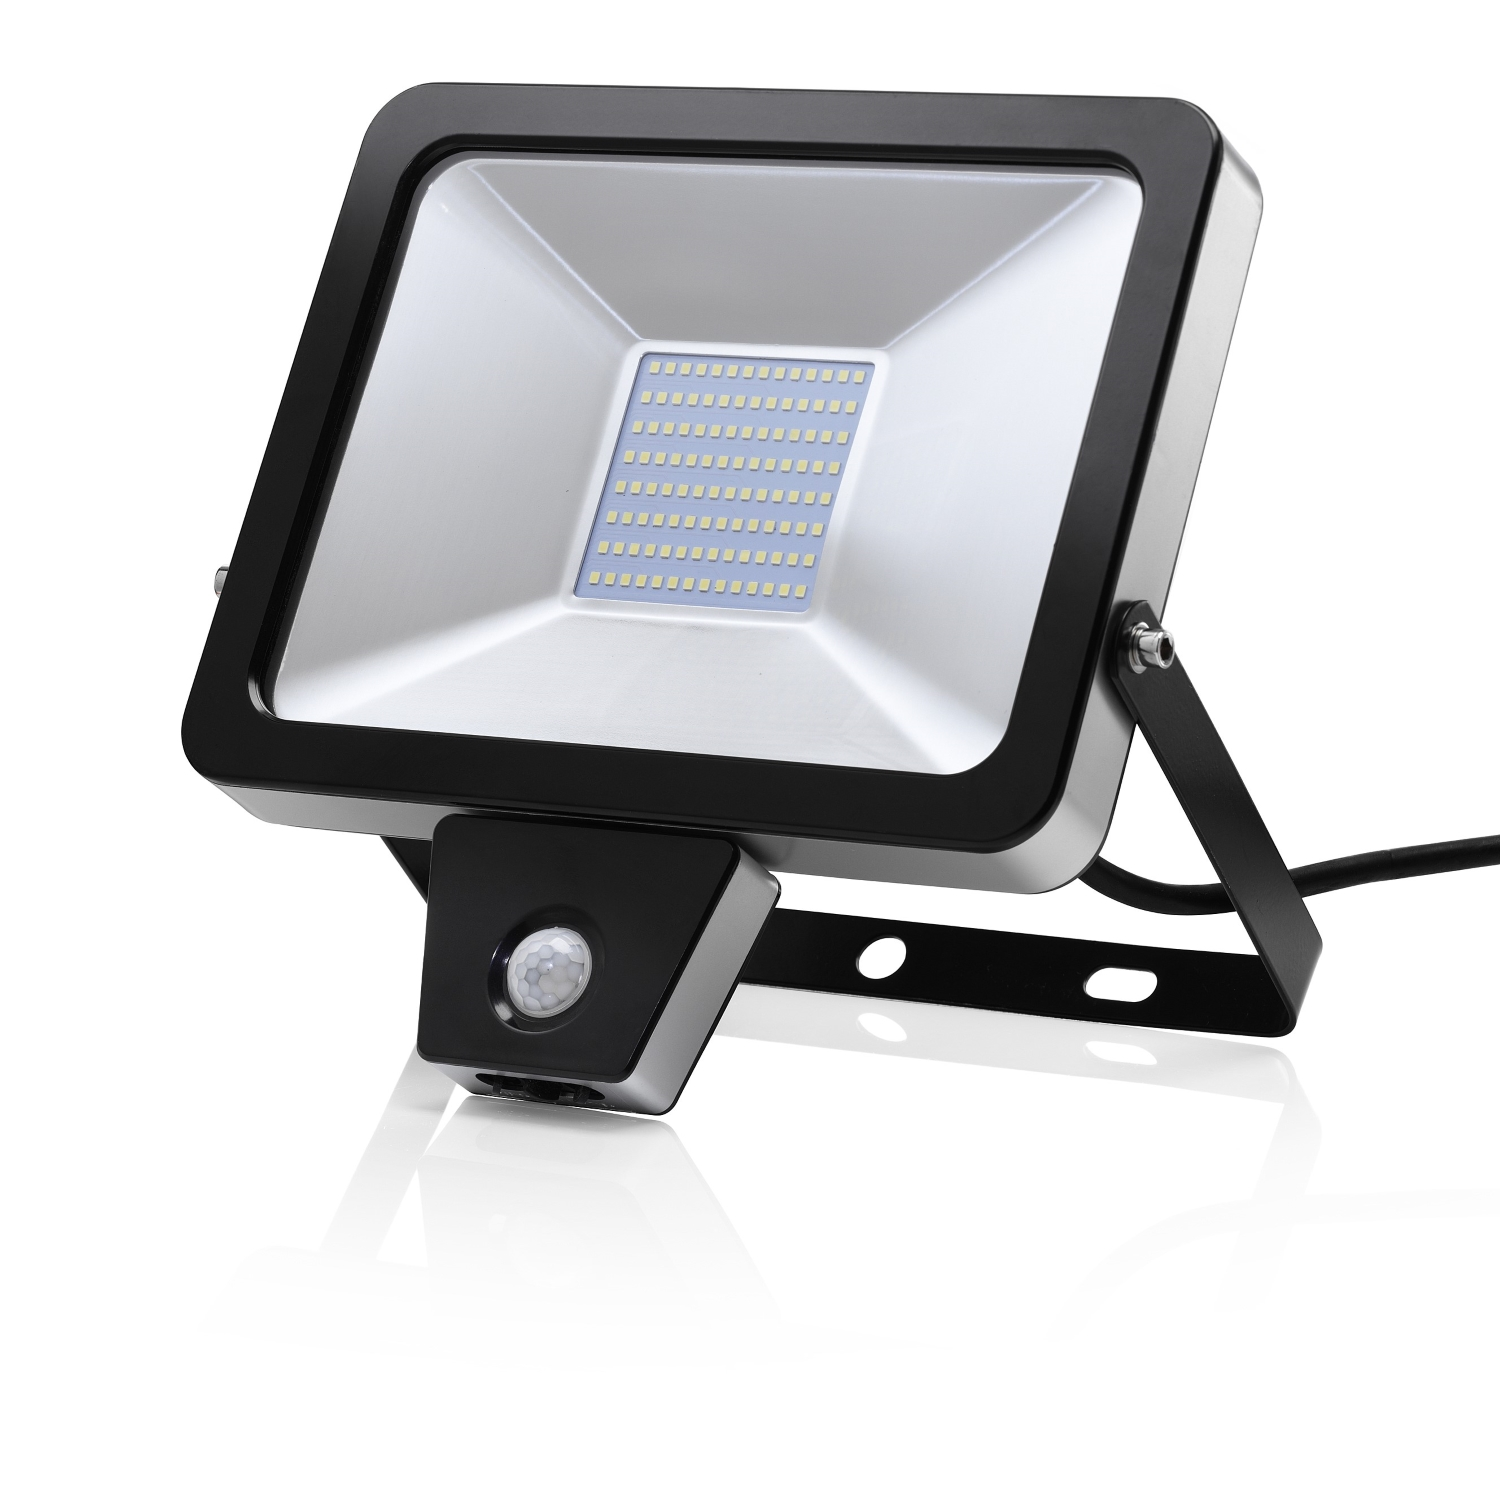 Outdoor Security Lights Pir: AURAGLOW 50W LED MOTION ACTIVATED PIR SENSOR OUTDOOR